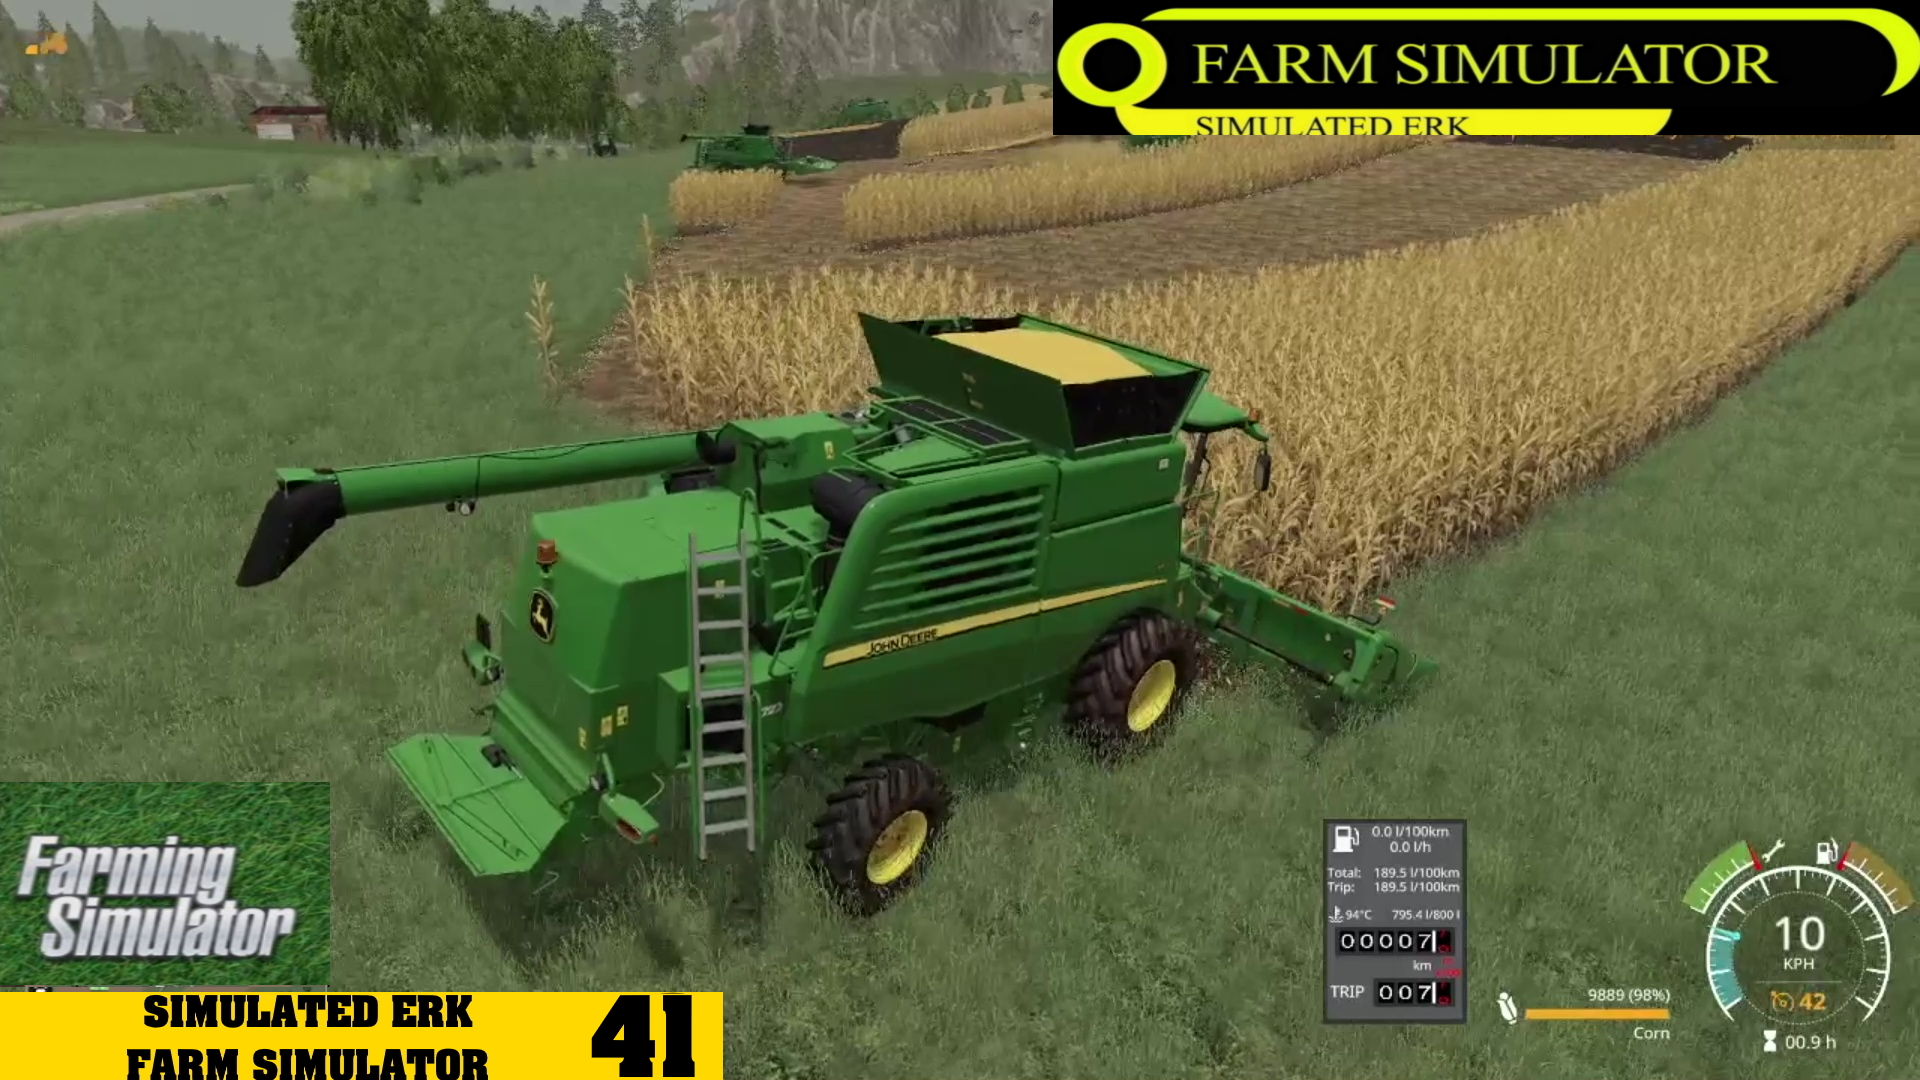 Simulated Erk: Farm Simulator episode 41 | Getting The Harvest On